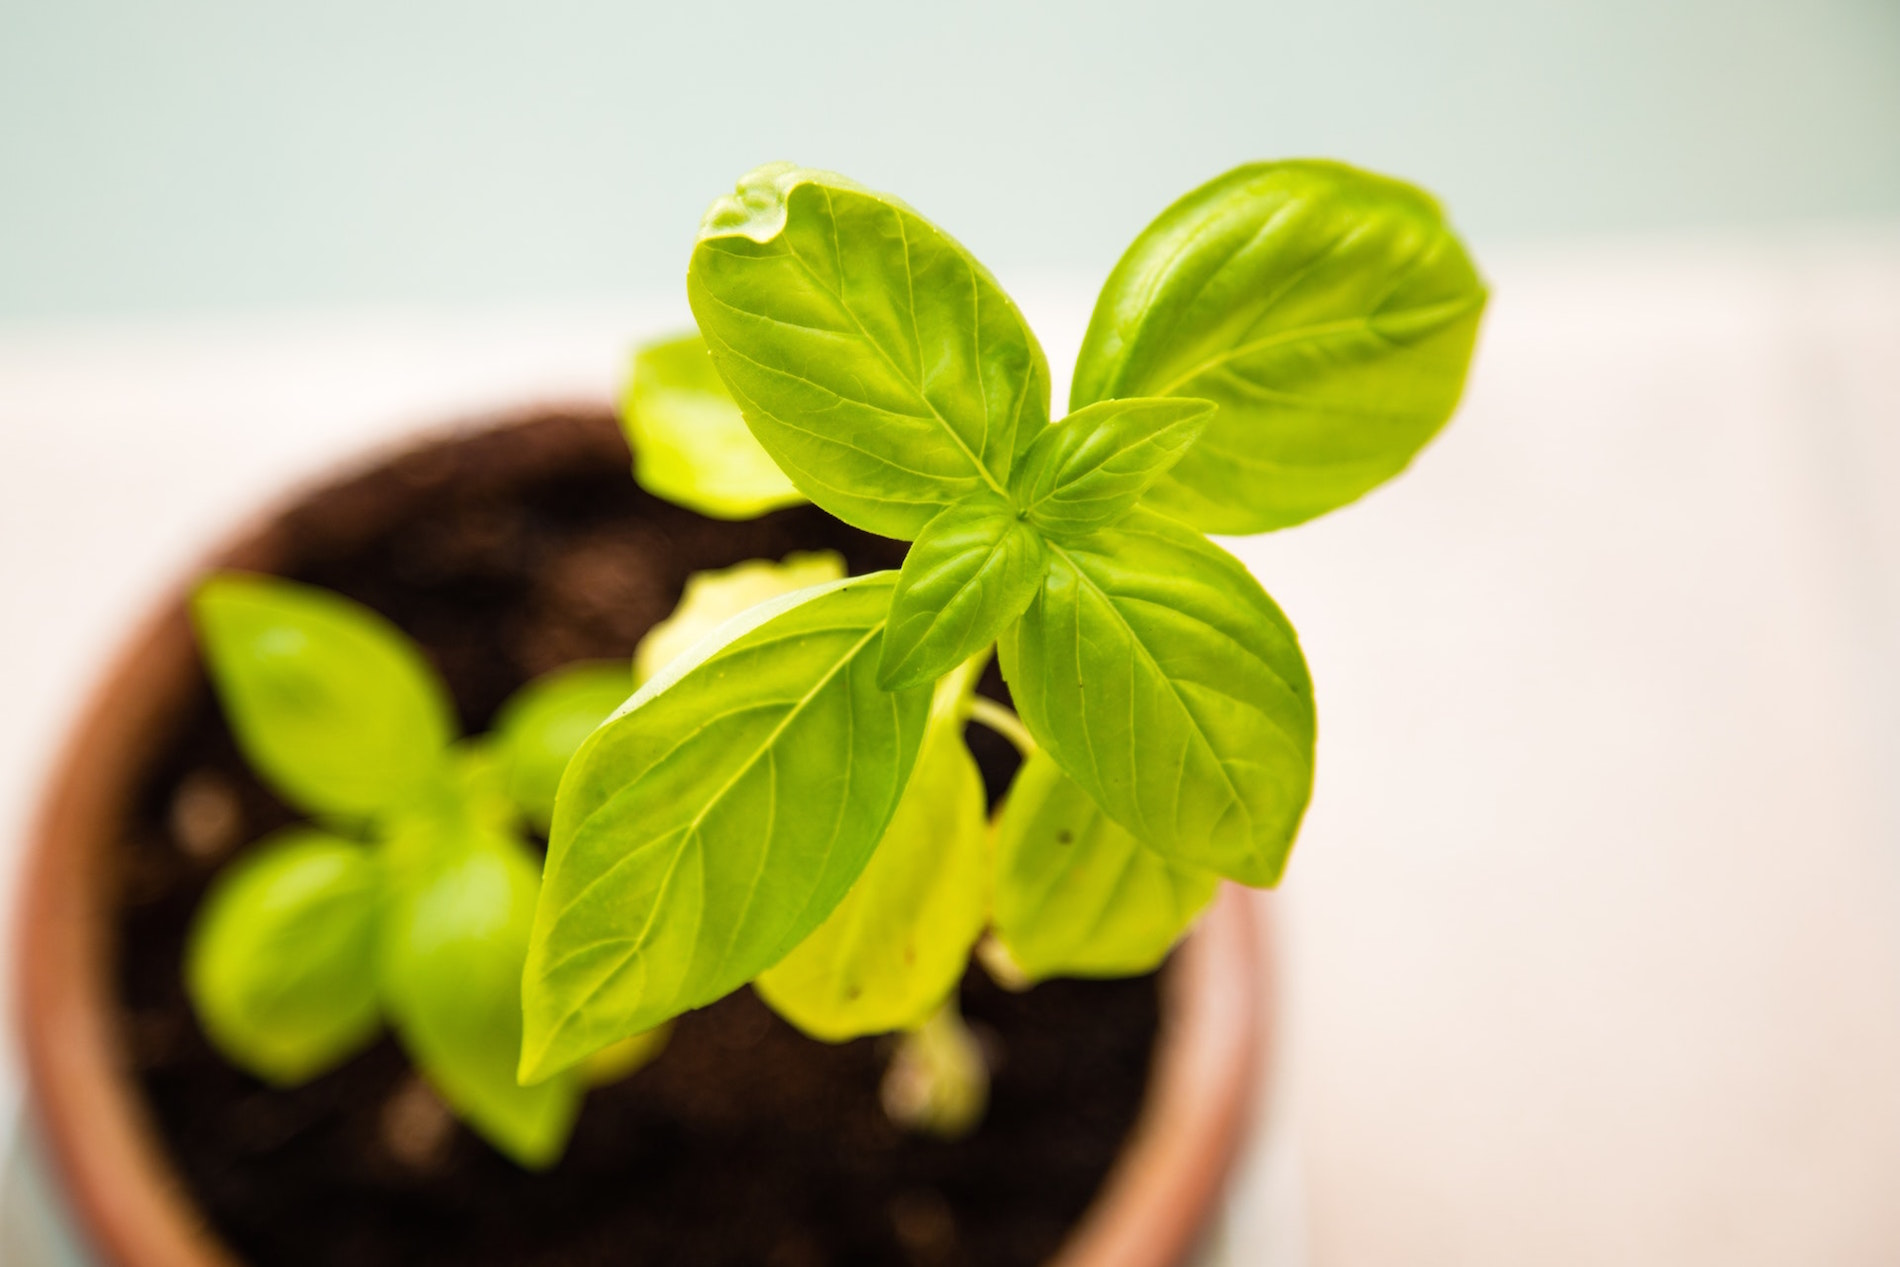 Crescent Homes Fall Gardening Tips: Move Herbs Indoors